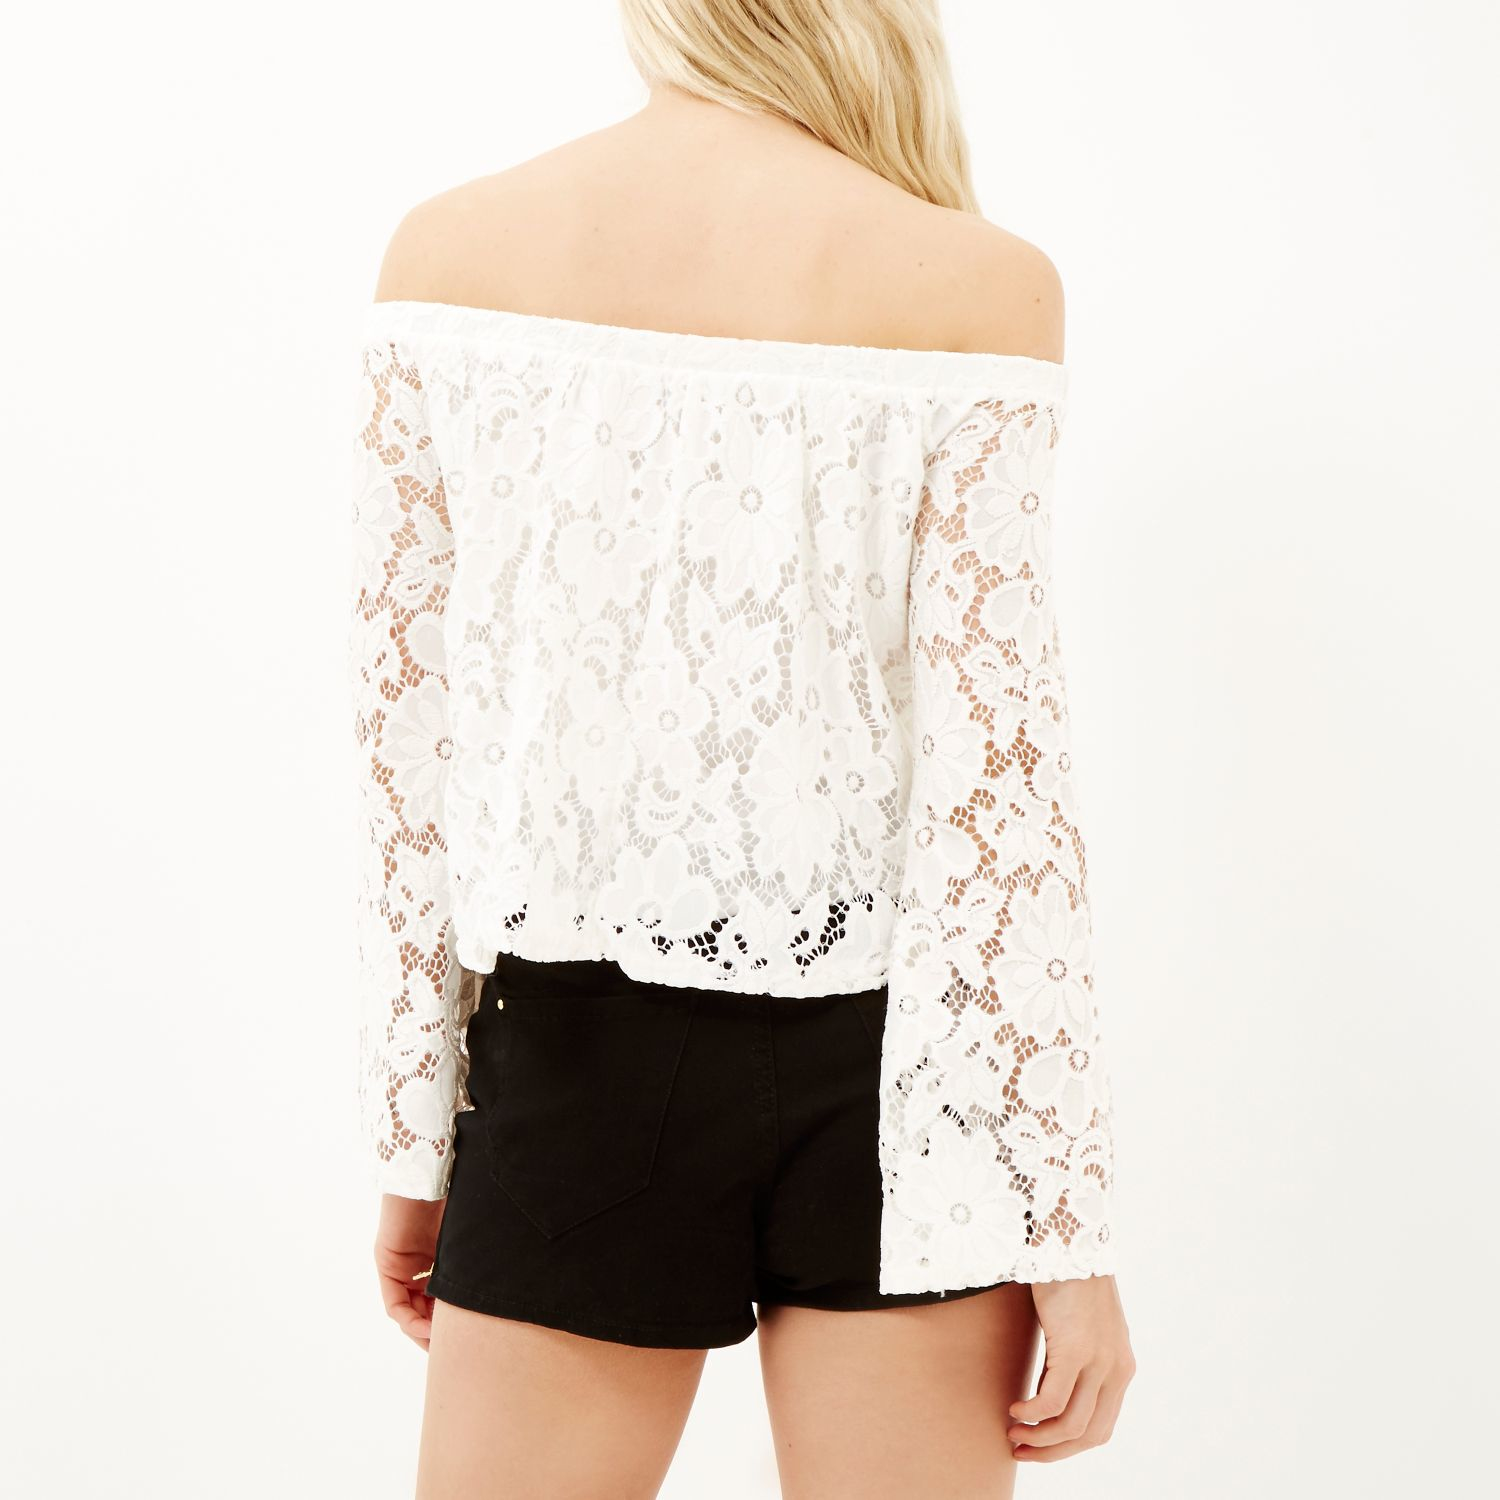 e378d43cb35 River Island Cream Lace Long Sleeve Bardot Top in Natural - Lyst